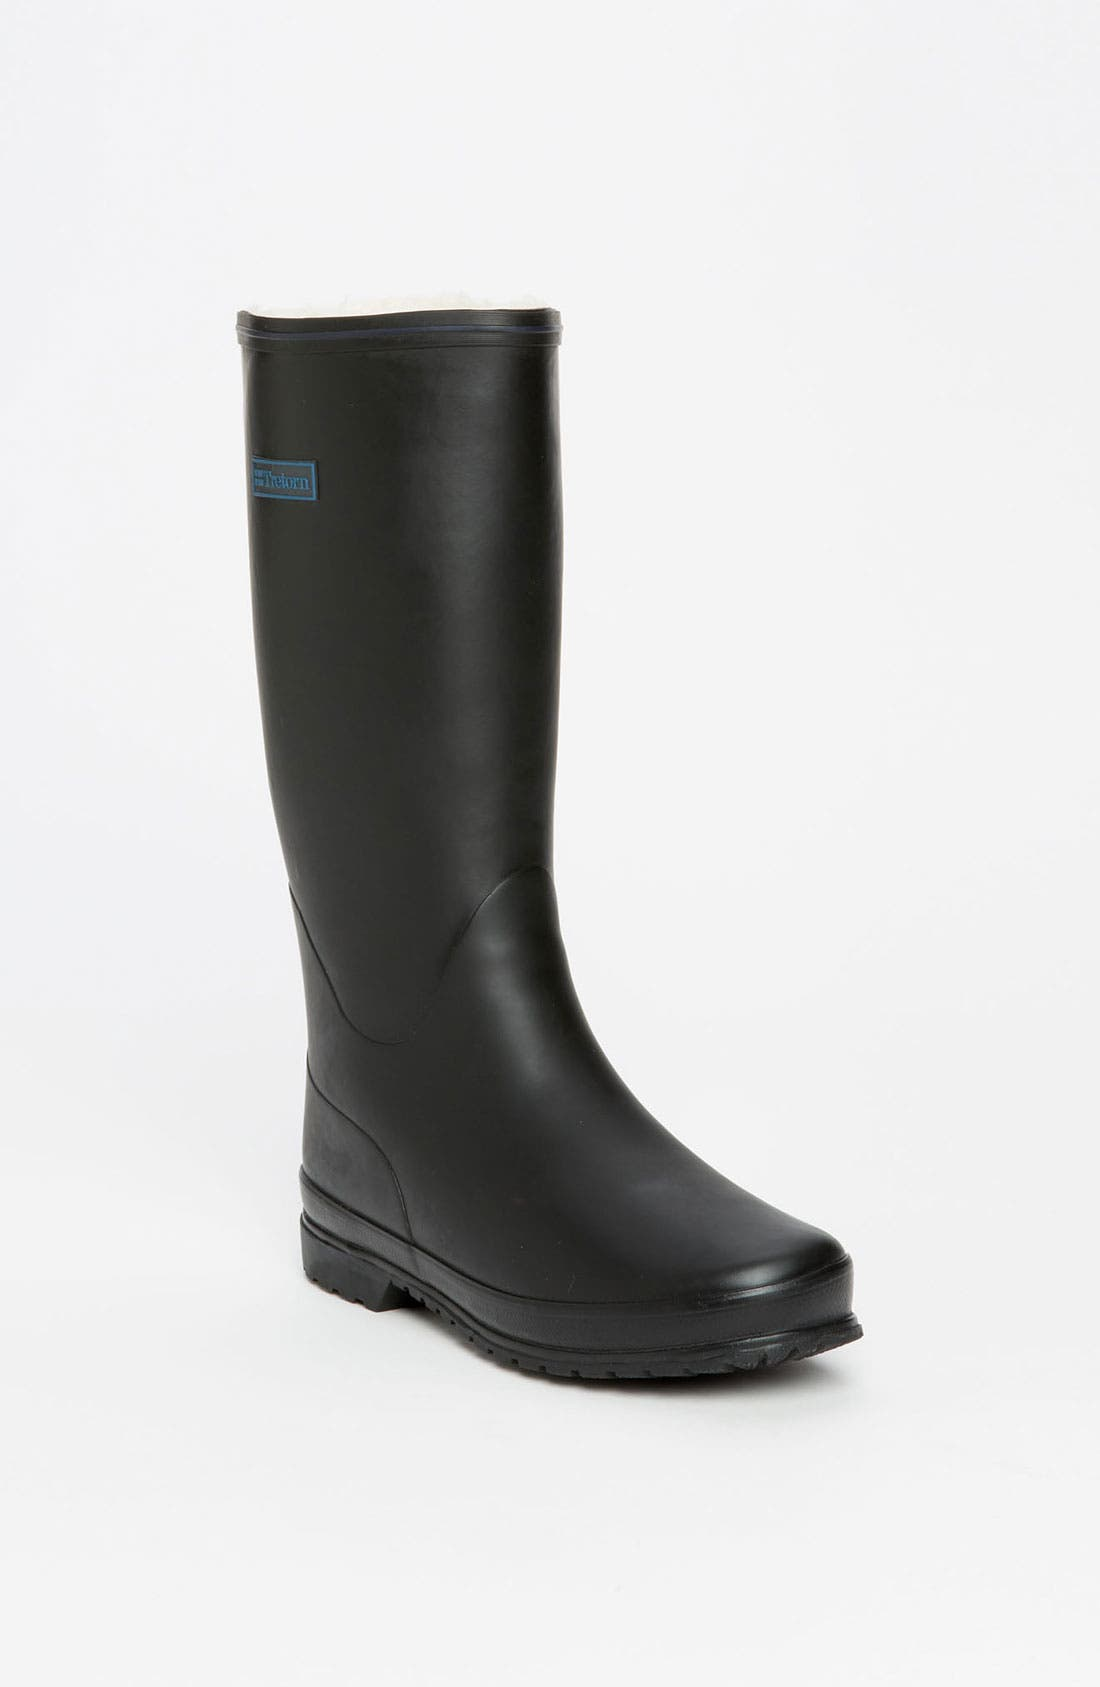 Alternate Image 1 Selected - Tretorn 'Kelly Vinter' Rain Boot (Women)